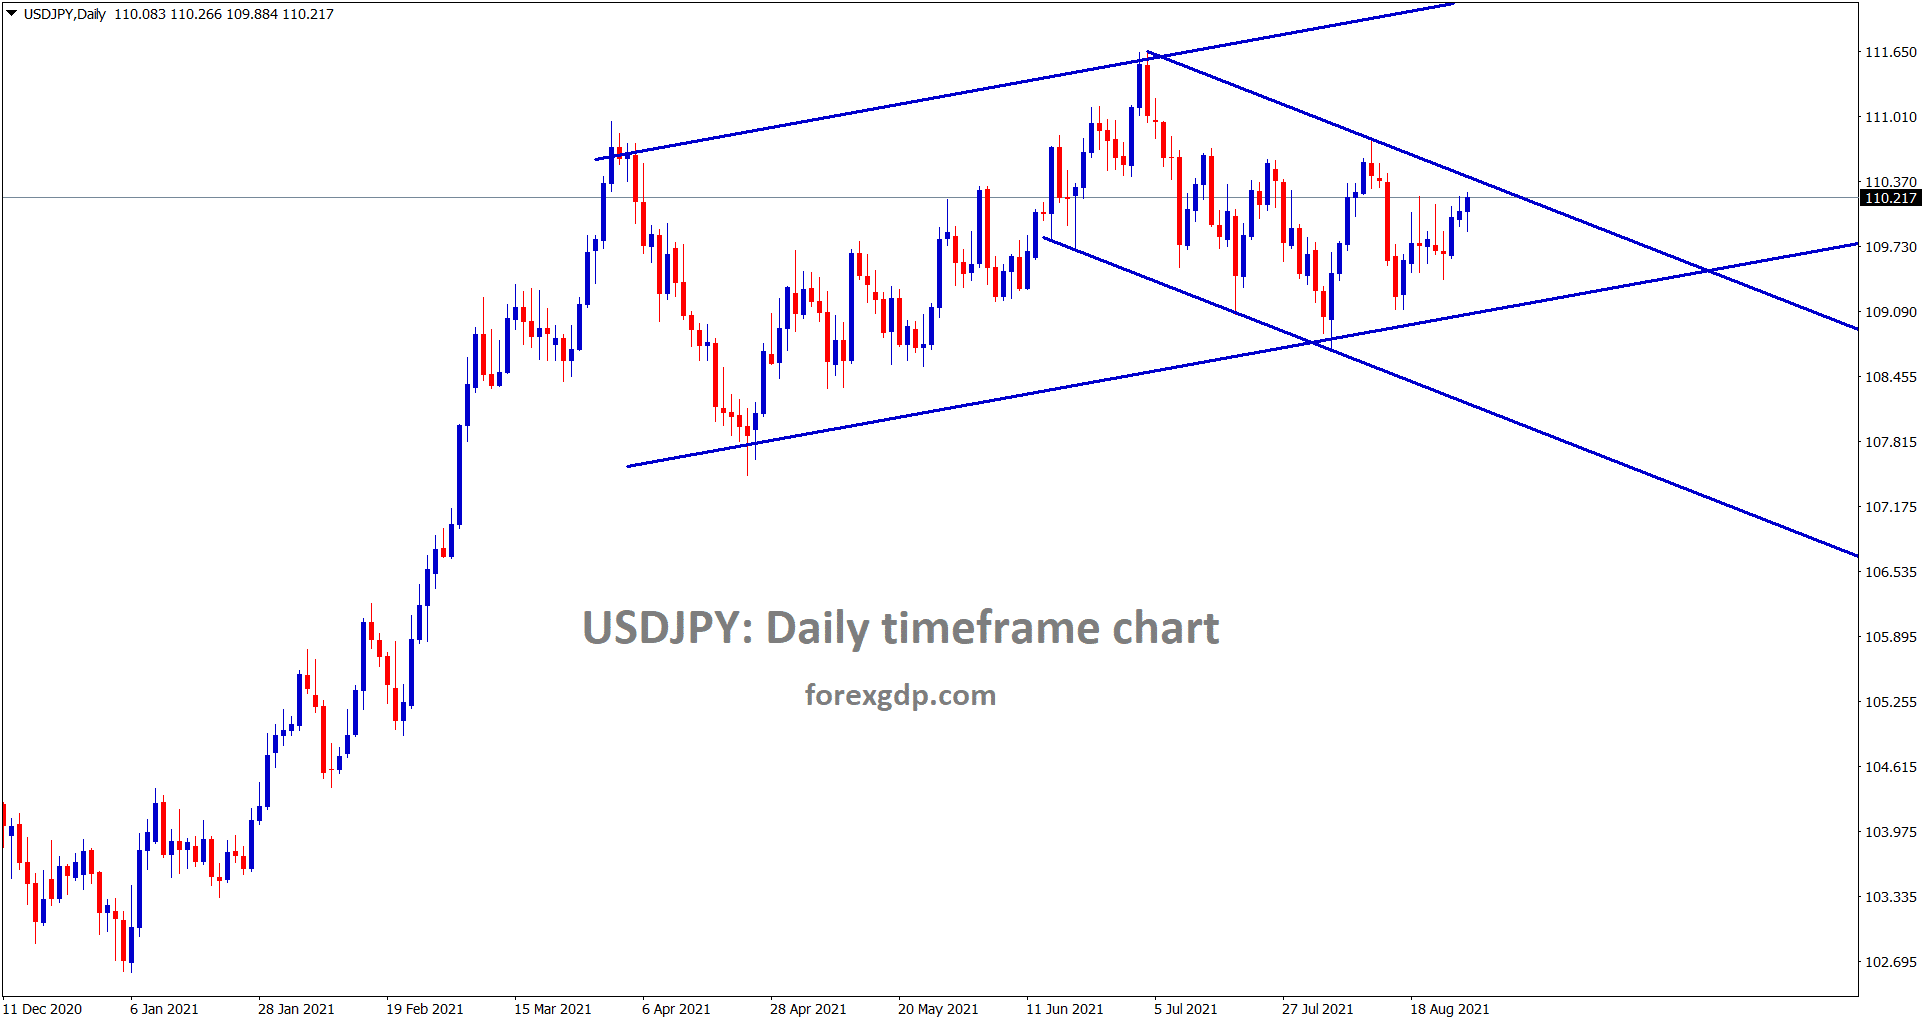 USDJPY is near to the lower high of the minor descending channel